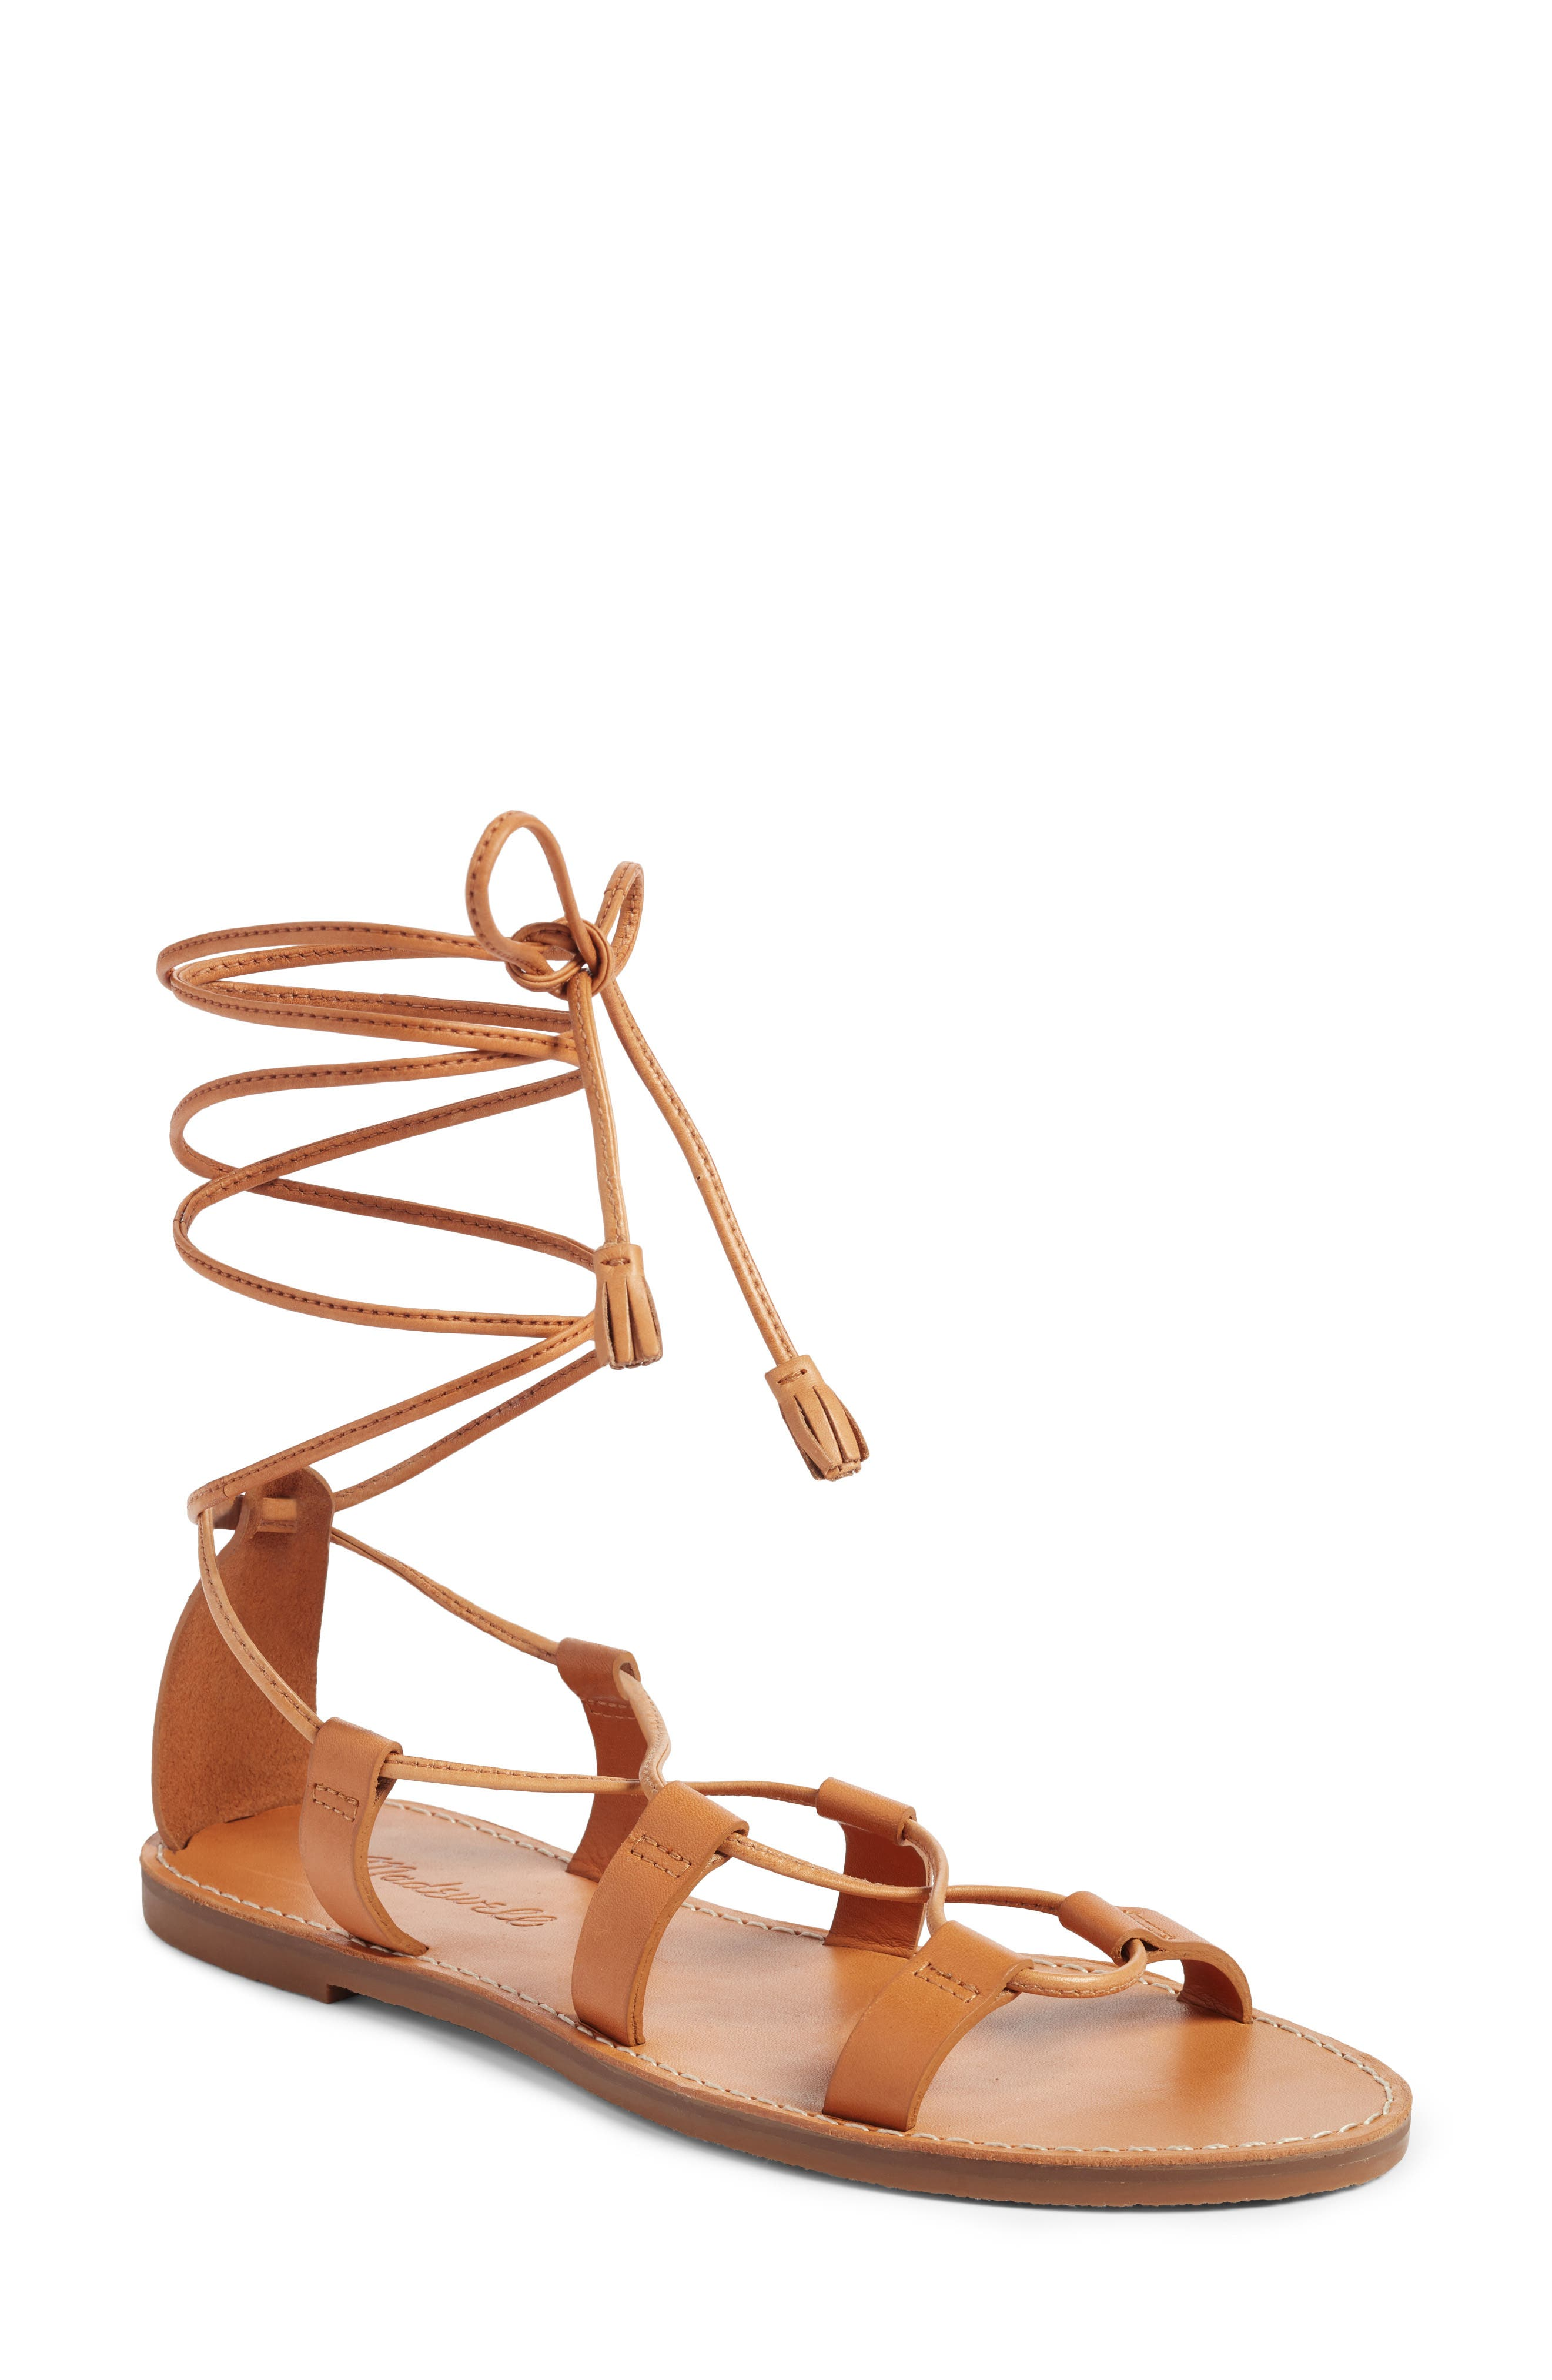 The Boardwalk Lace-Up Sandal,                             Main thumbnail 1, color,                             Desert Camel Leather